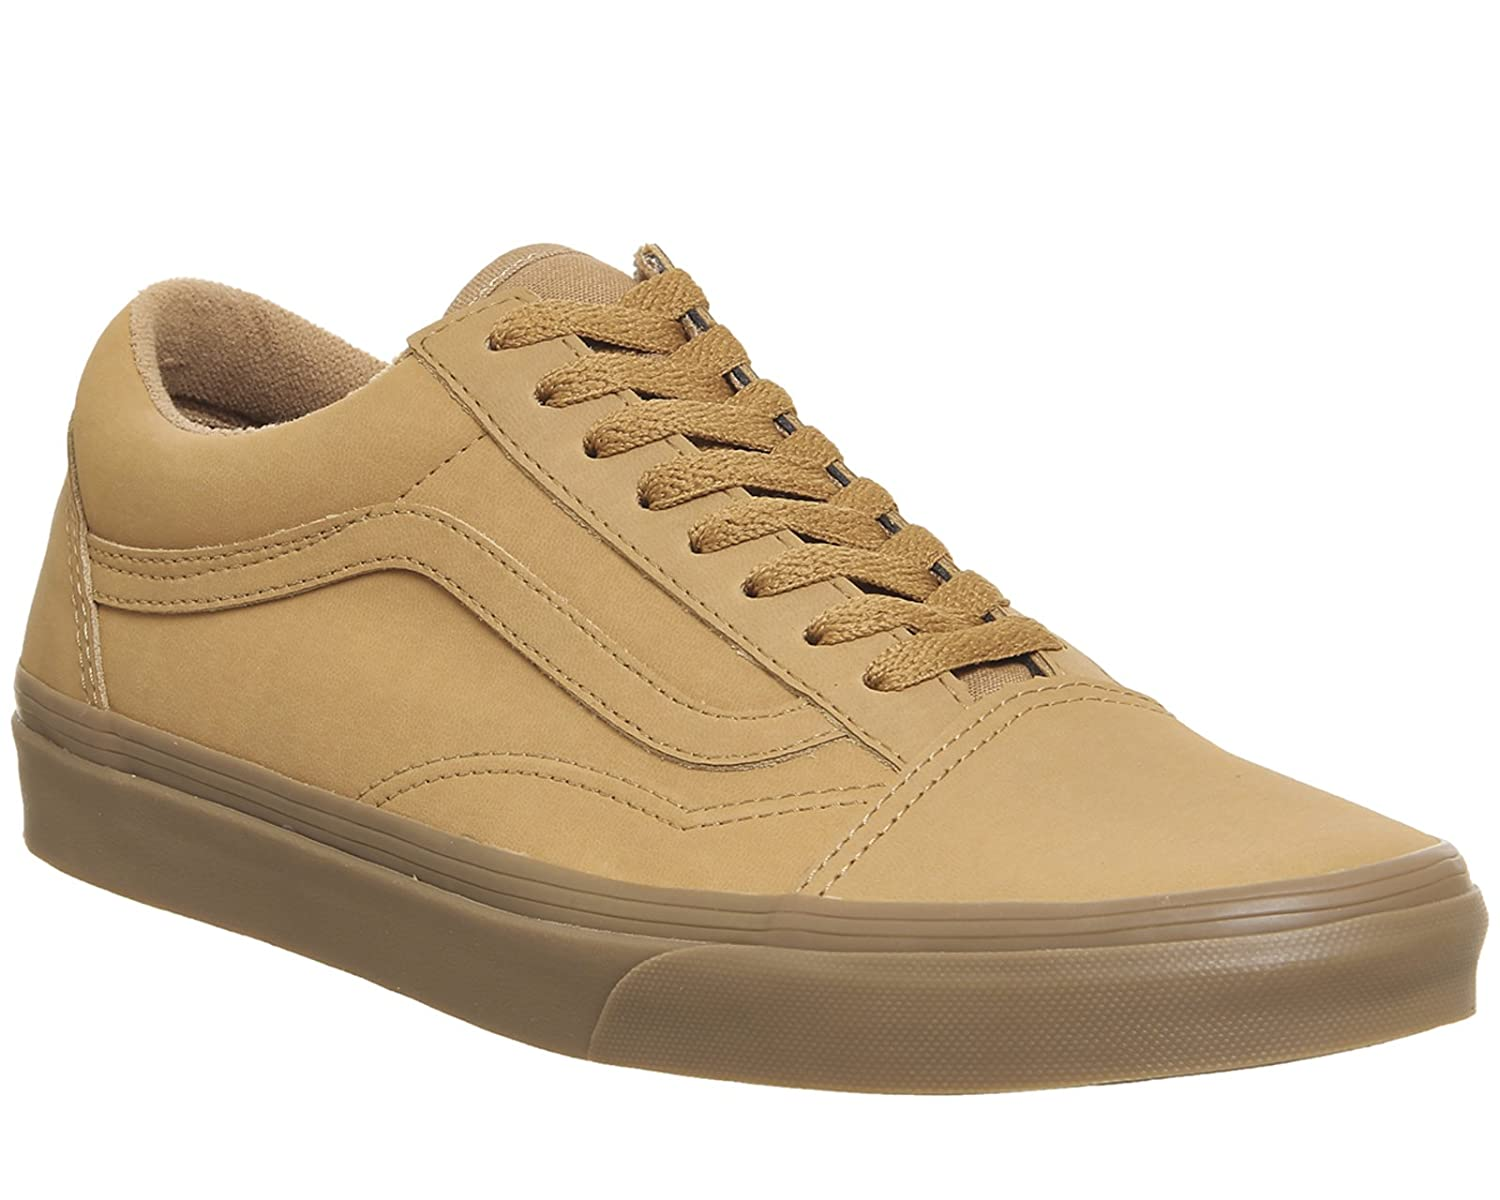 Vans Unisex Old Skool Classic Skate Shoes B01MXWJWFK 12 M US Women / 10.5 M US Men|Gum Mono